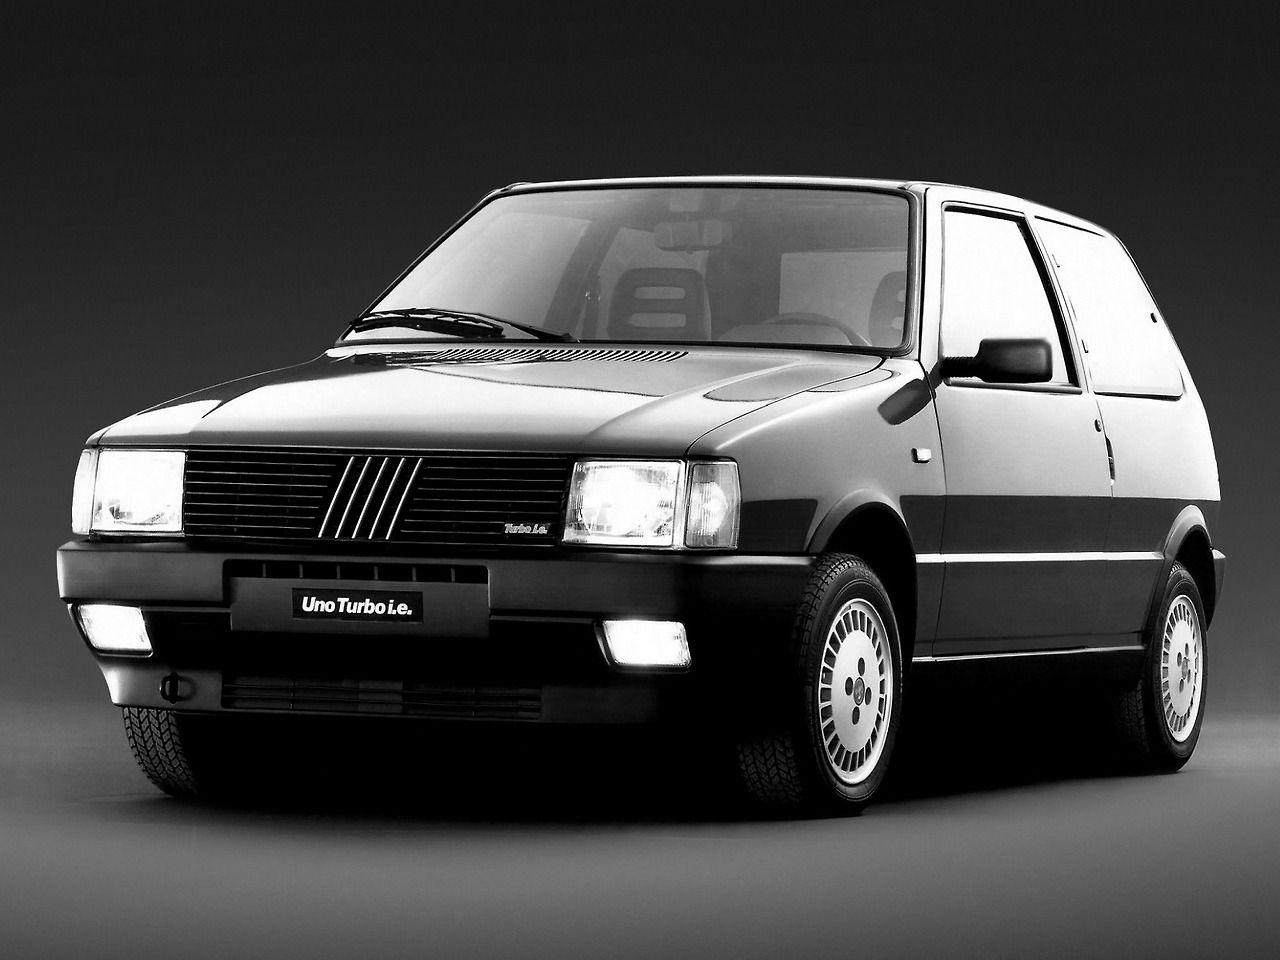 Black white fiat uno turbo ie art works pinterest fiat black white fiat uno turbo ie altavistaventures Images